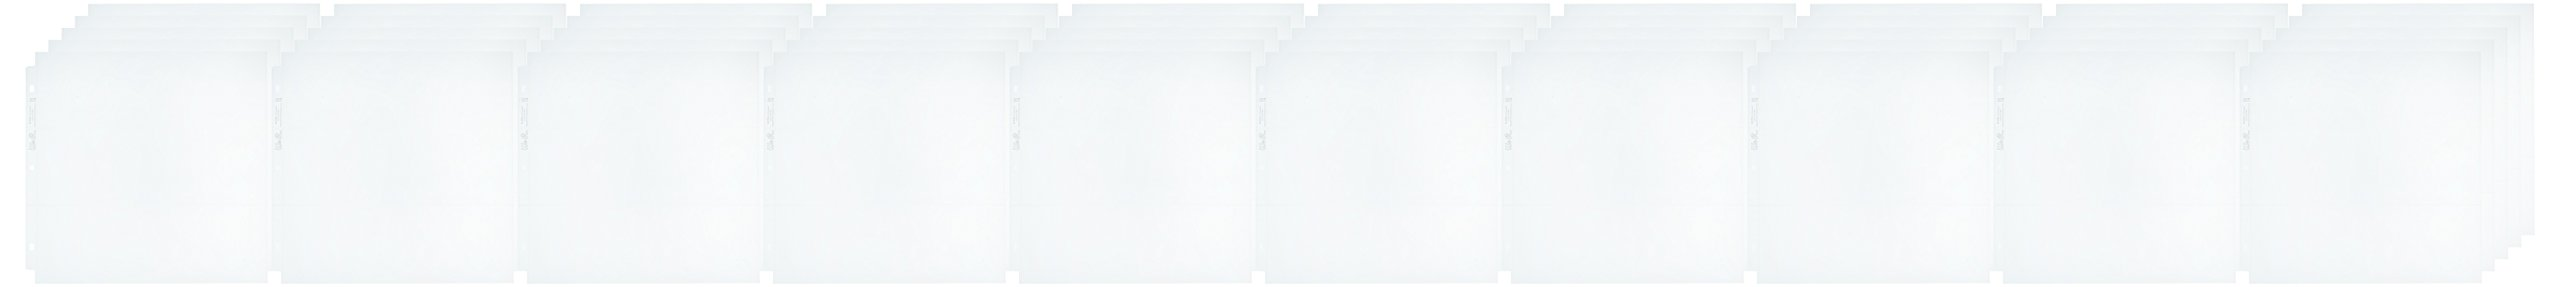 We R Memory Keepers 12 x 12-inch (6-4x6-inch pockets) 3-Ring Album Page Protectors by 50 pack